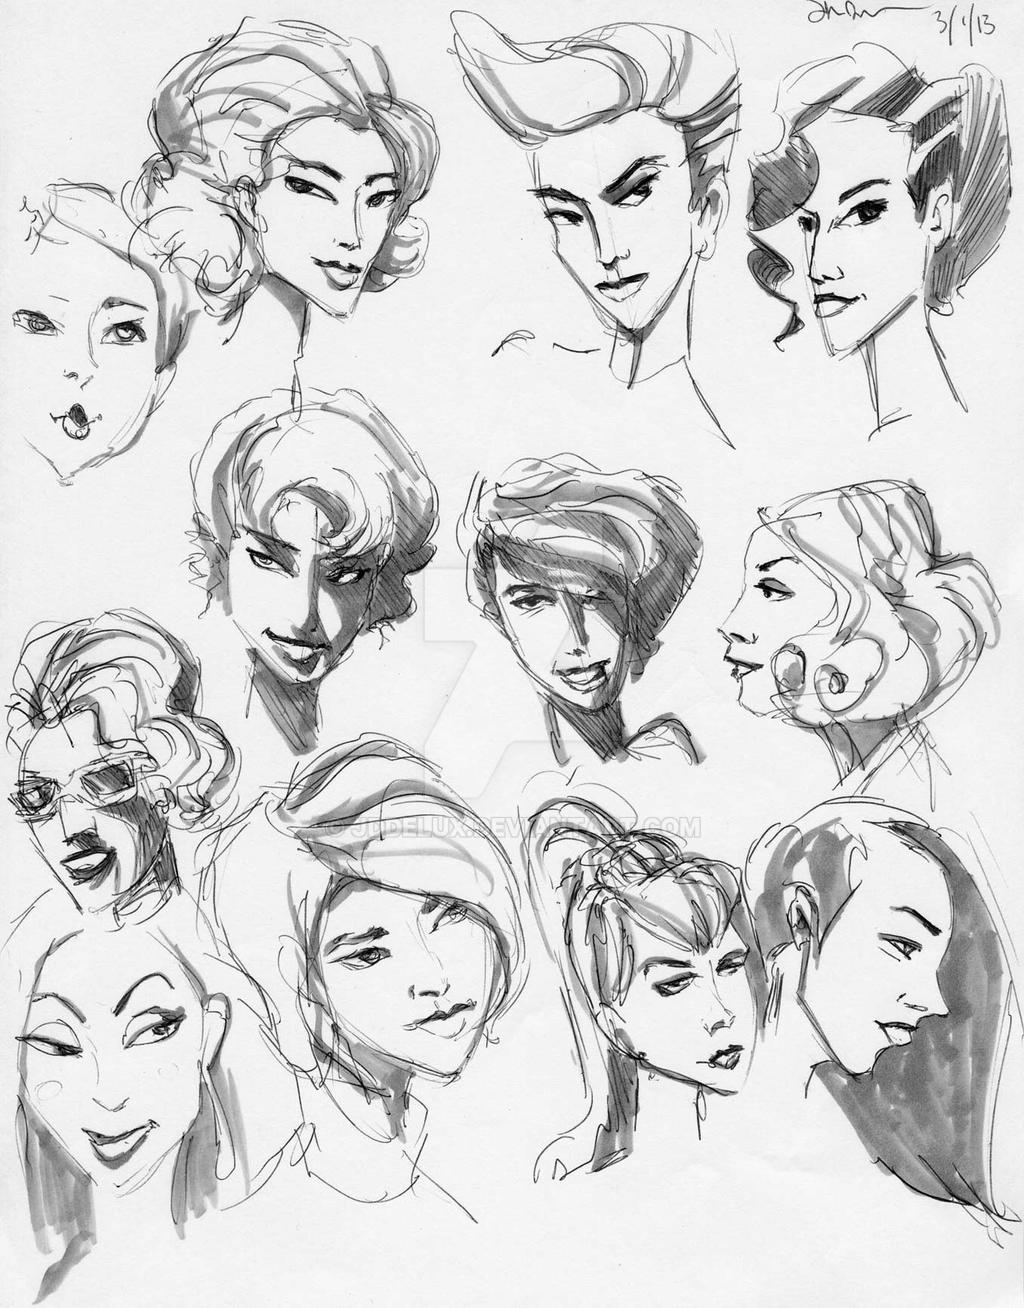 Woman Hairstyles By Jddelux On Deviantart